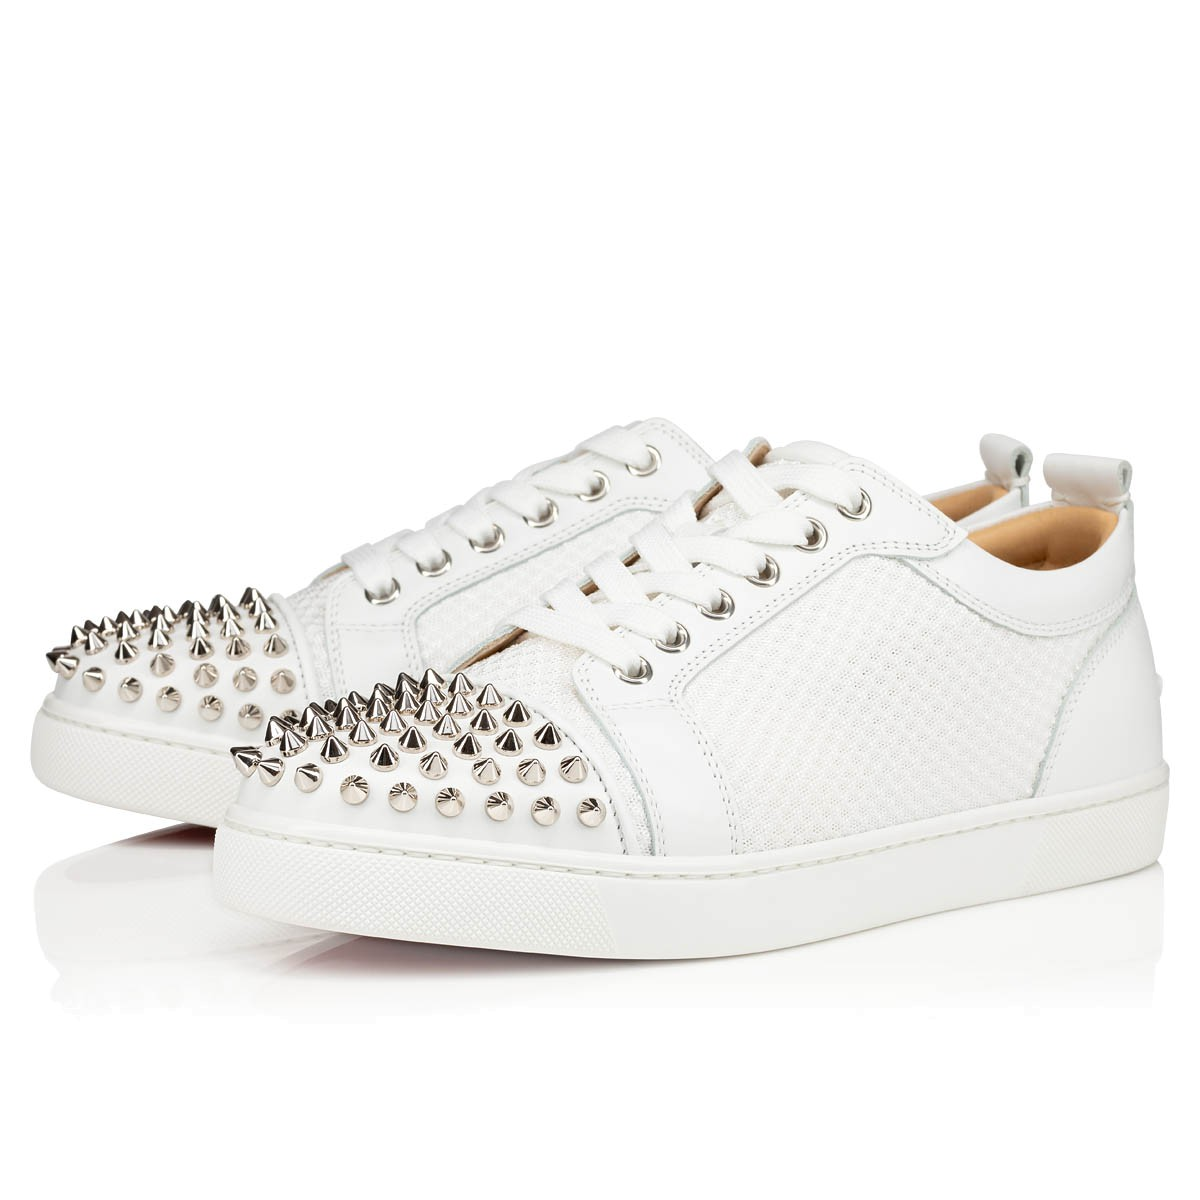 huge discount e2f2d 7e20f AC LOUIS JUNIOR SPIKES WOMAN White Fabric and Calfskin - Women Shoes -  Christian Louboutin